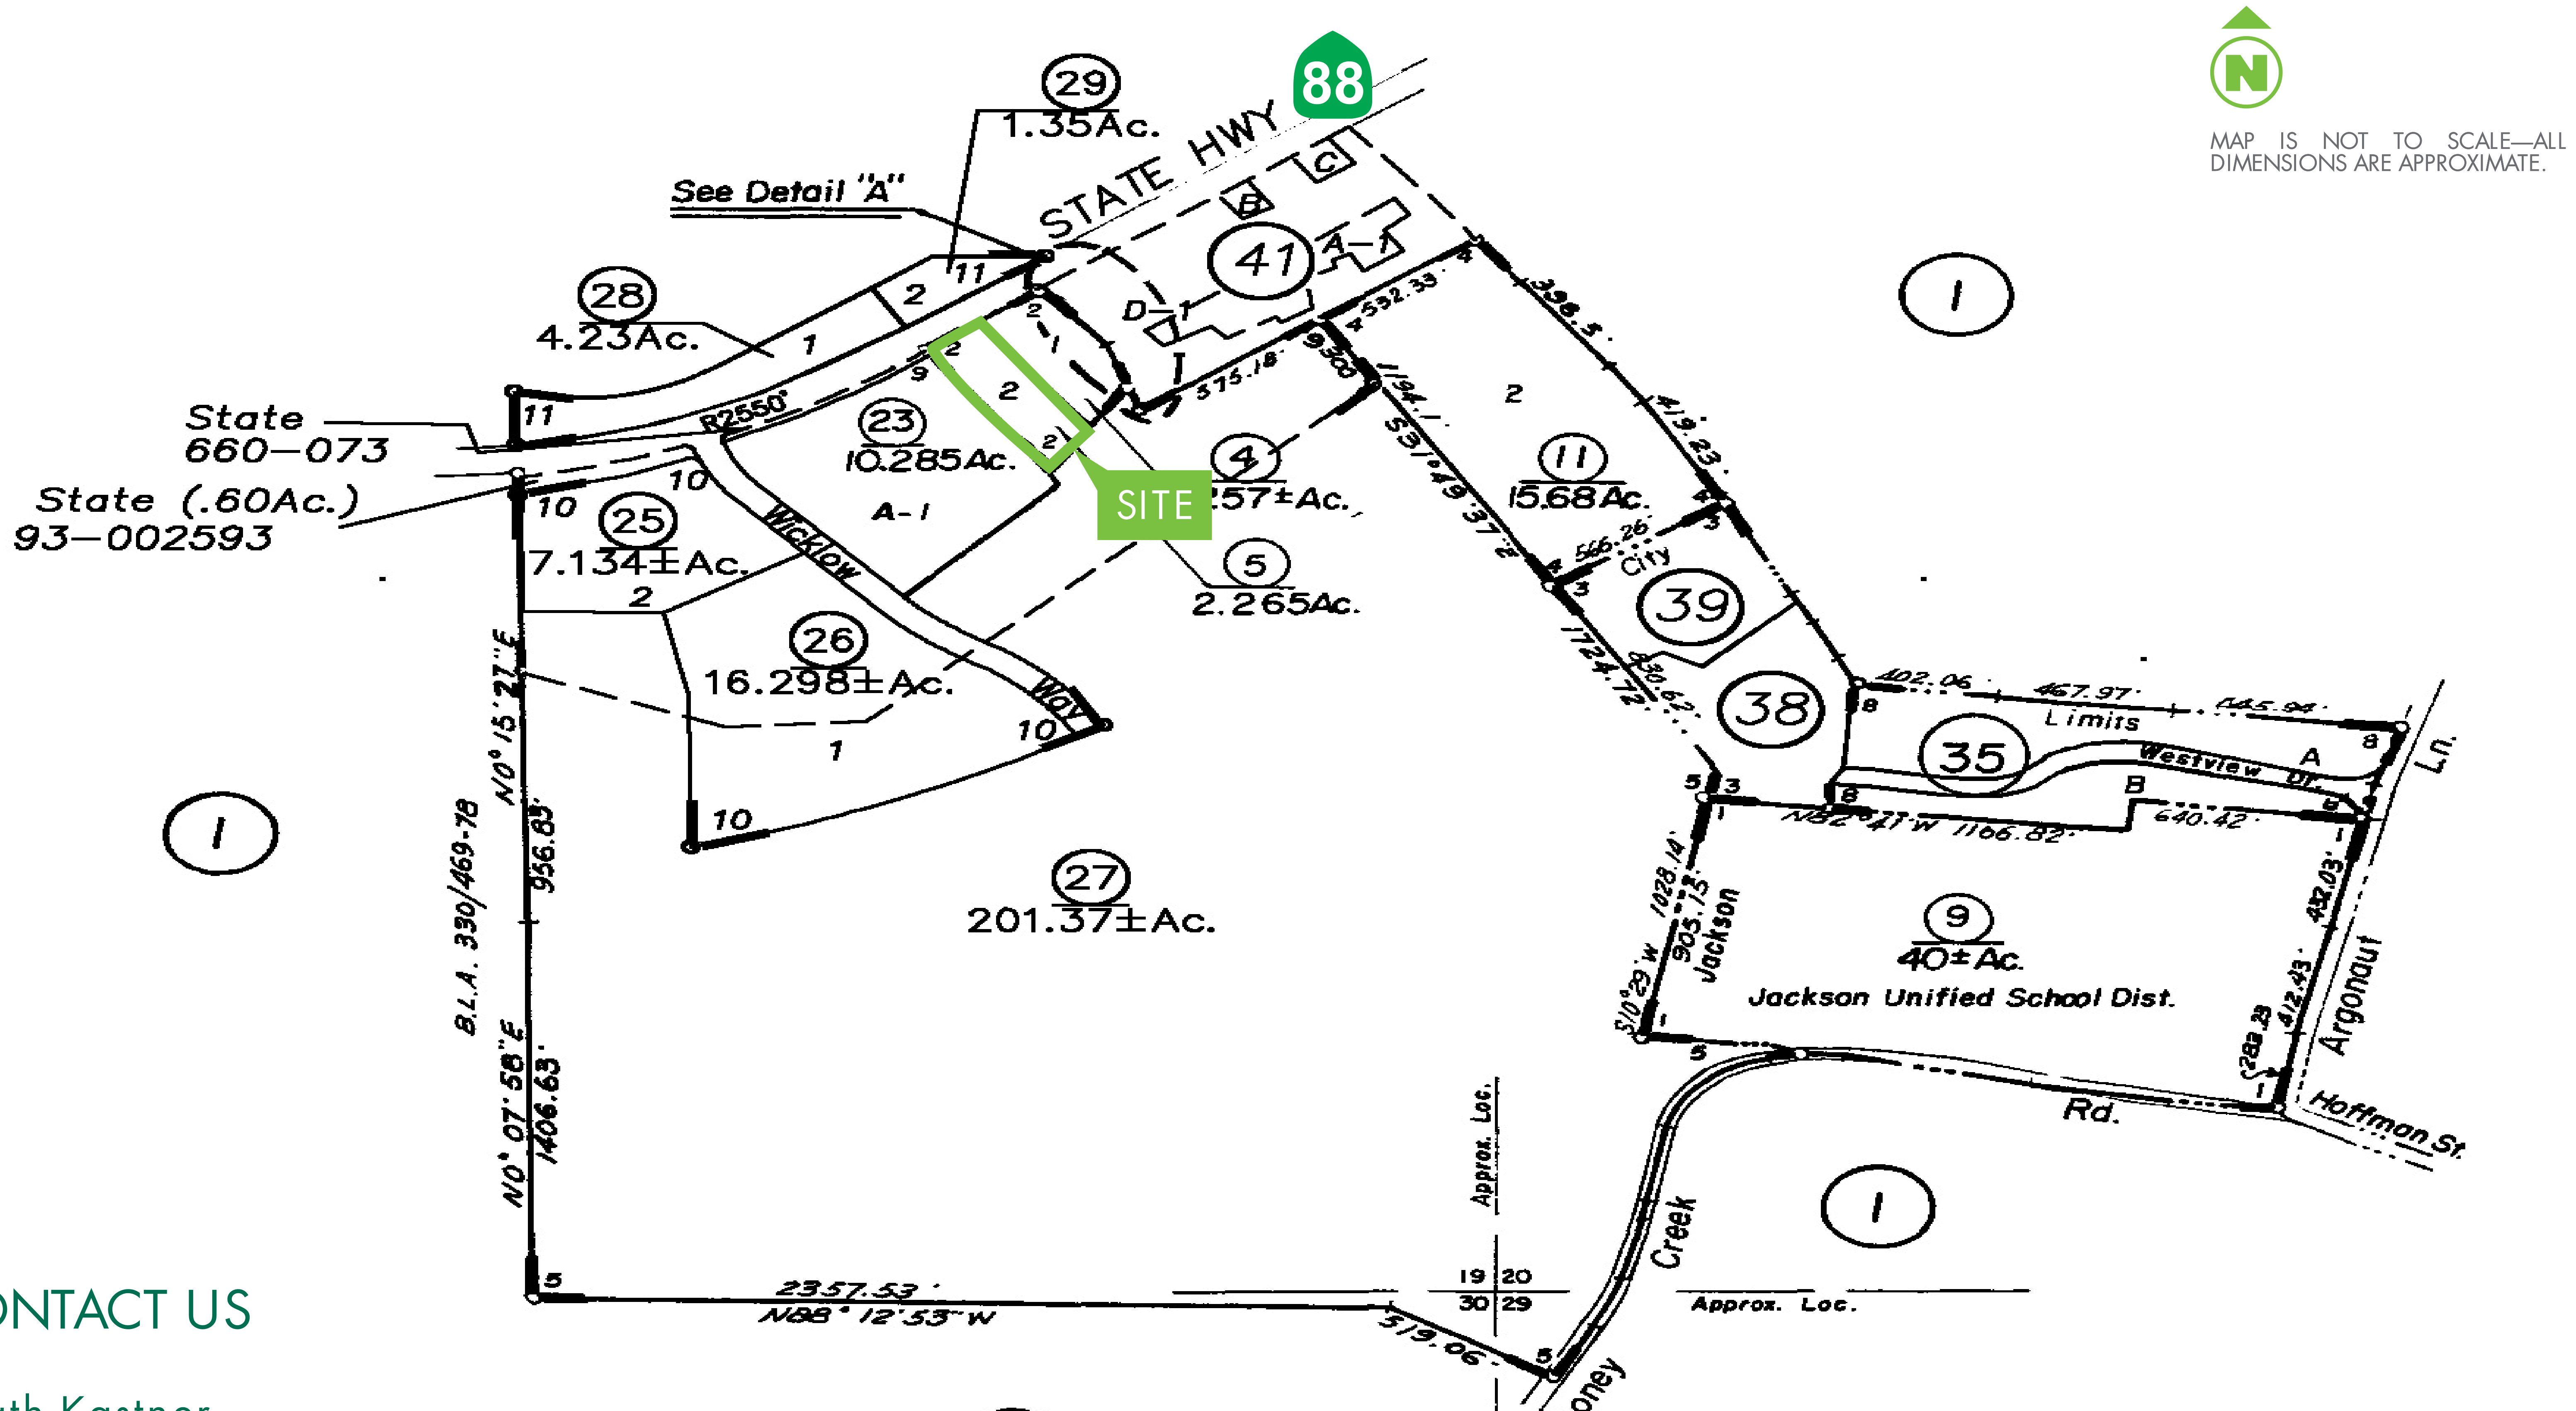 Retail/Commercial Land - 11930 Highway 88: site plan